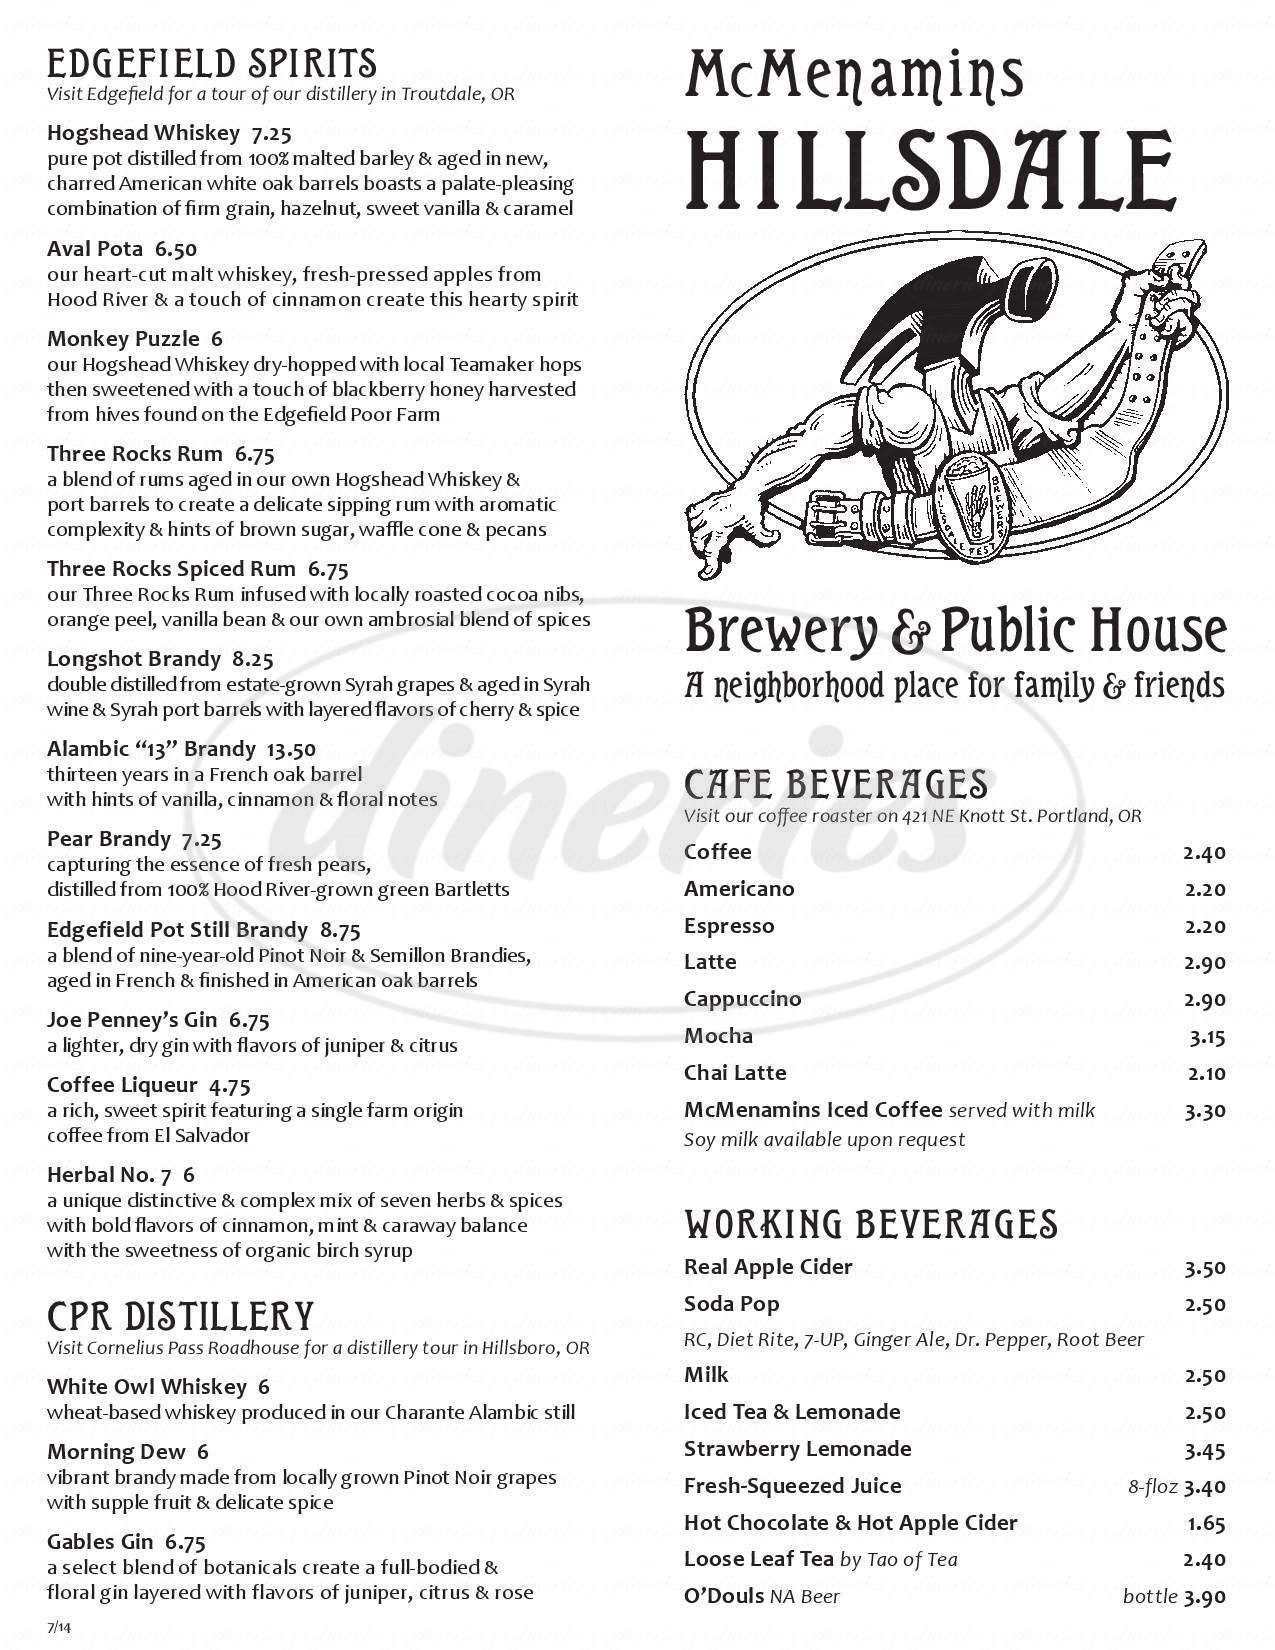 menu for McMenamins Hillsdale Brewery & Public House